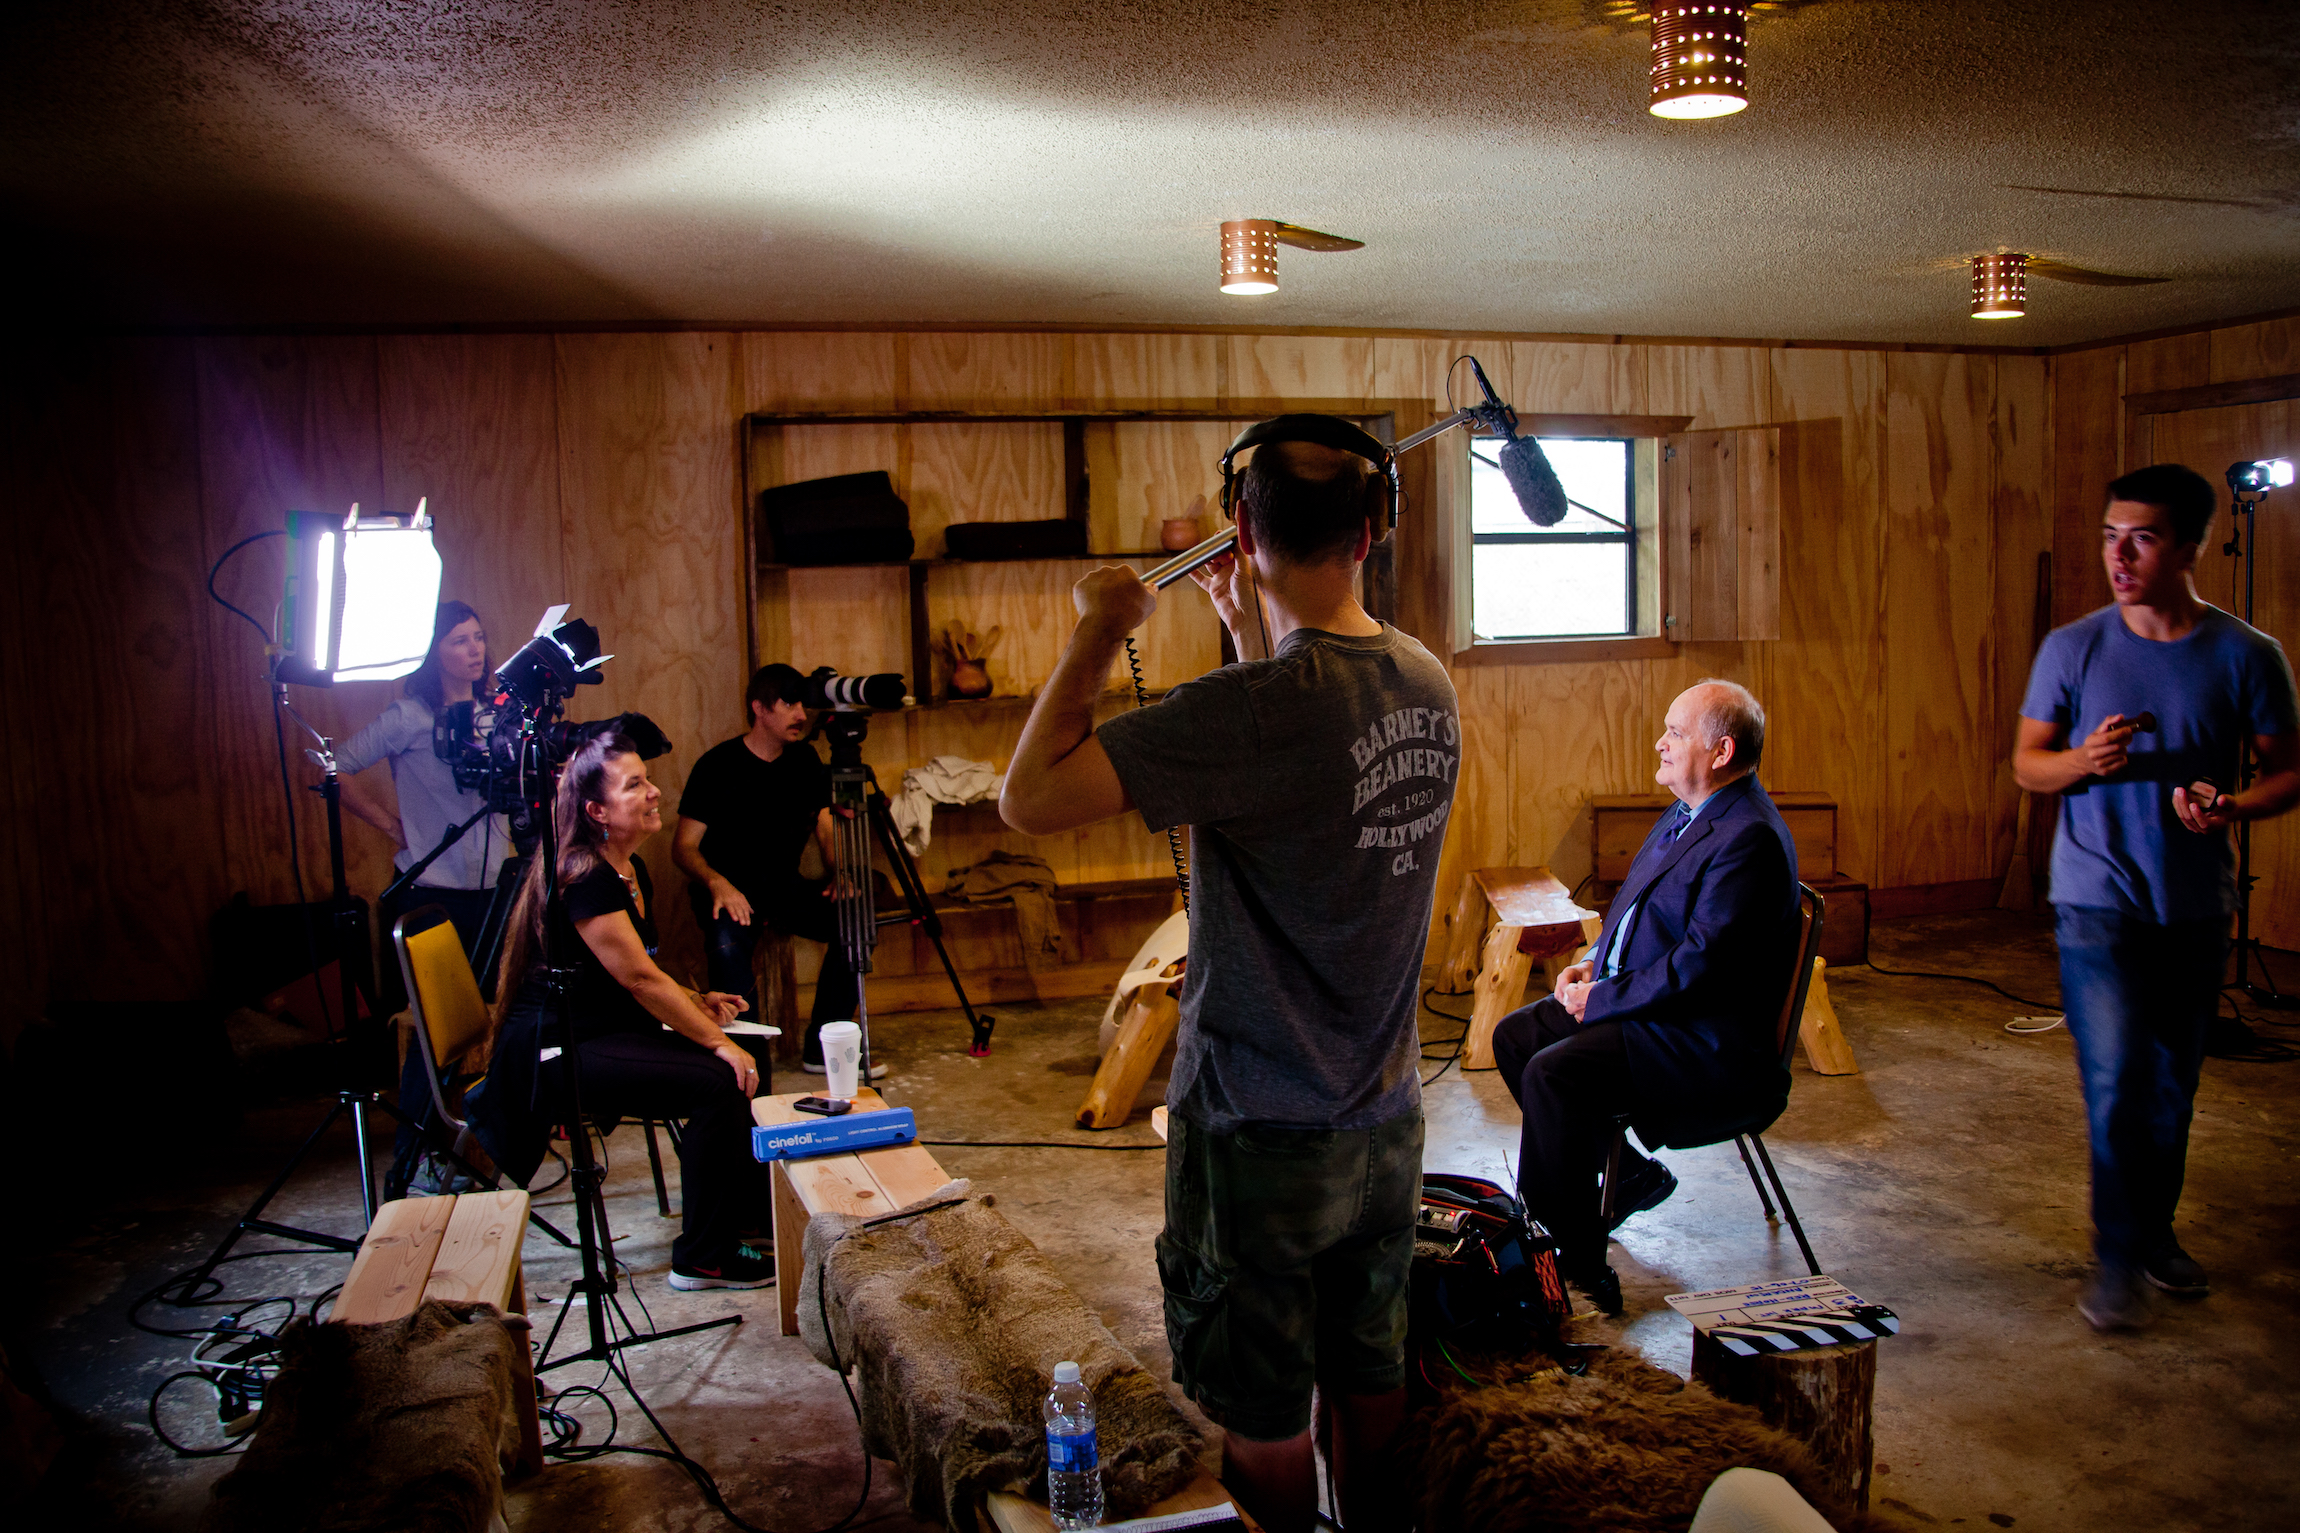 On location at the Cherokee Heritage Center in Oklahoma, the Mankiller Documentary crew interviews Mark Downing a former staff member of Wilma Mankiller's.